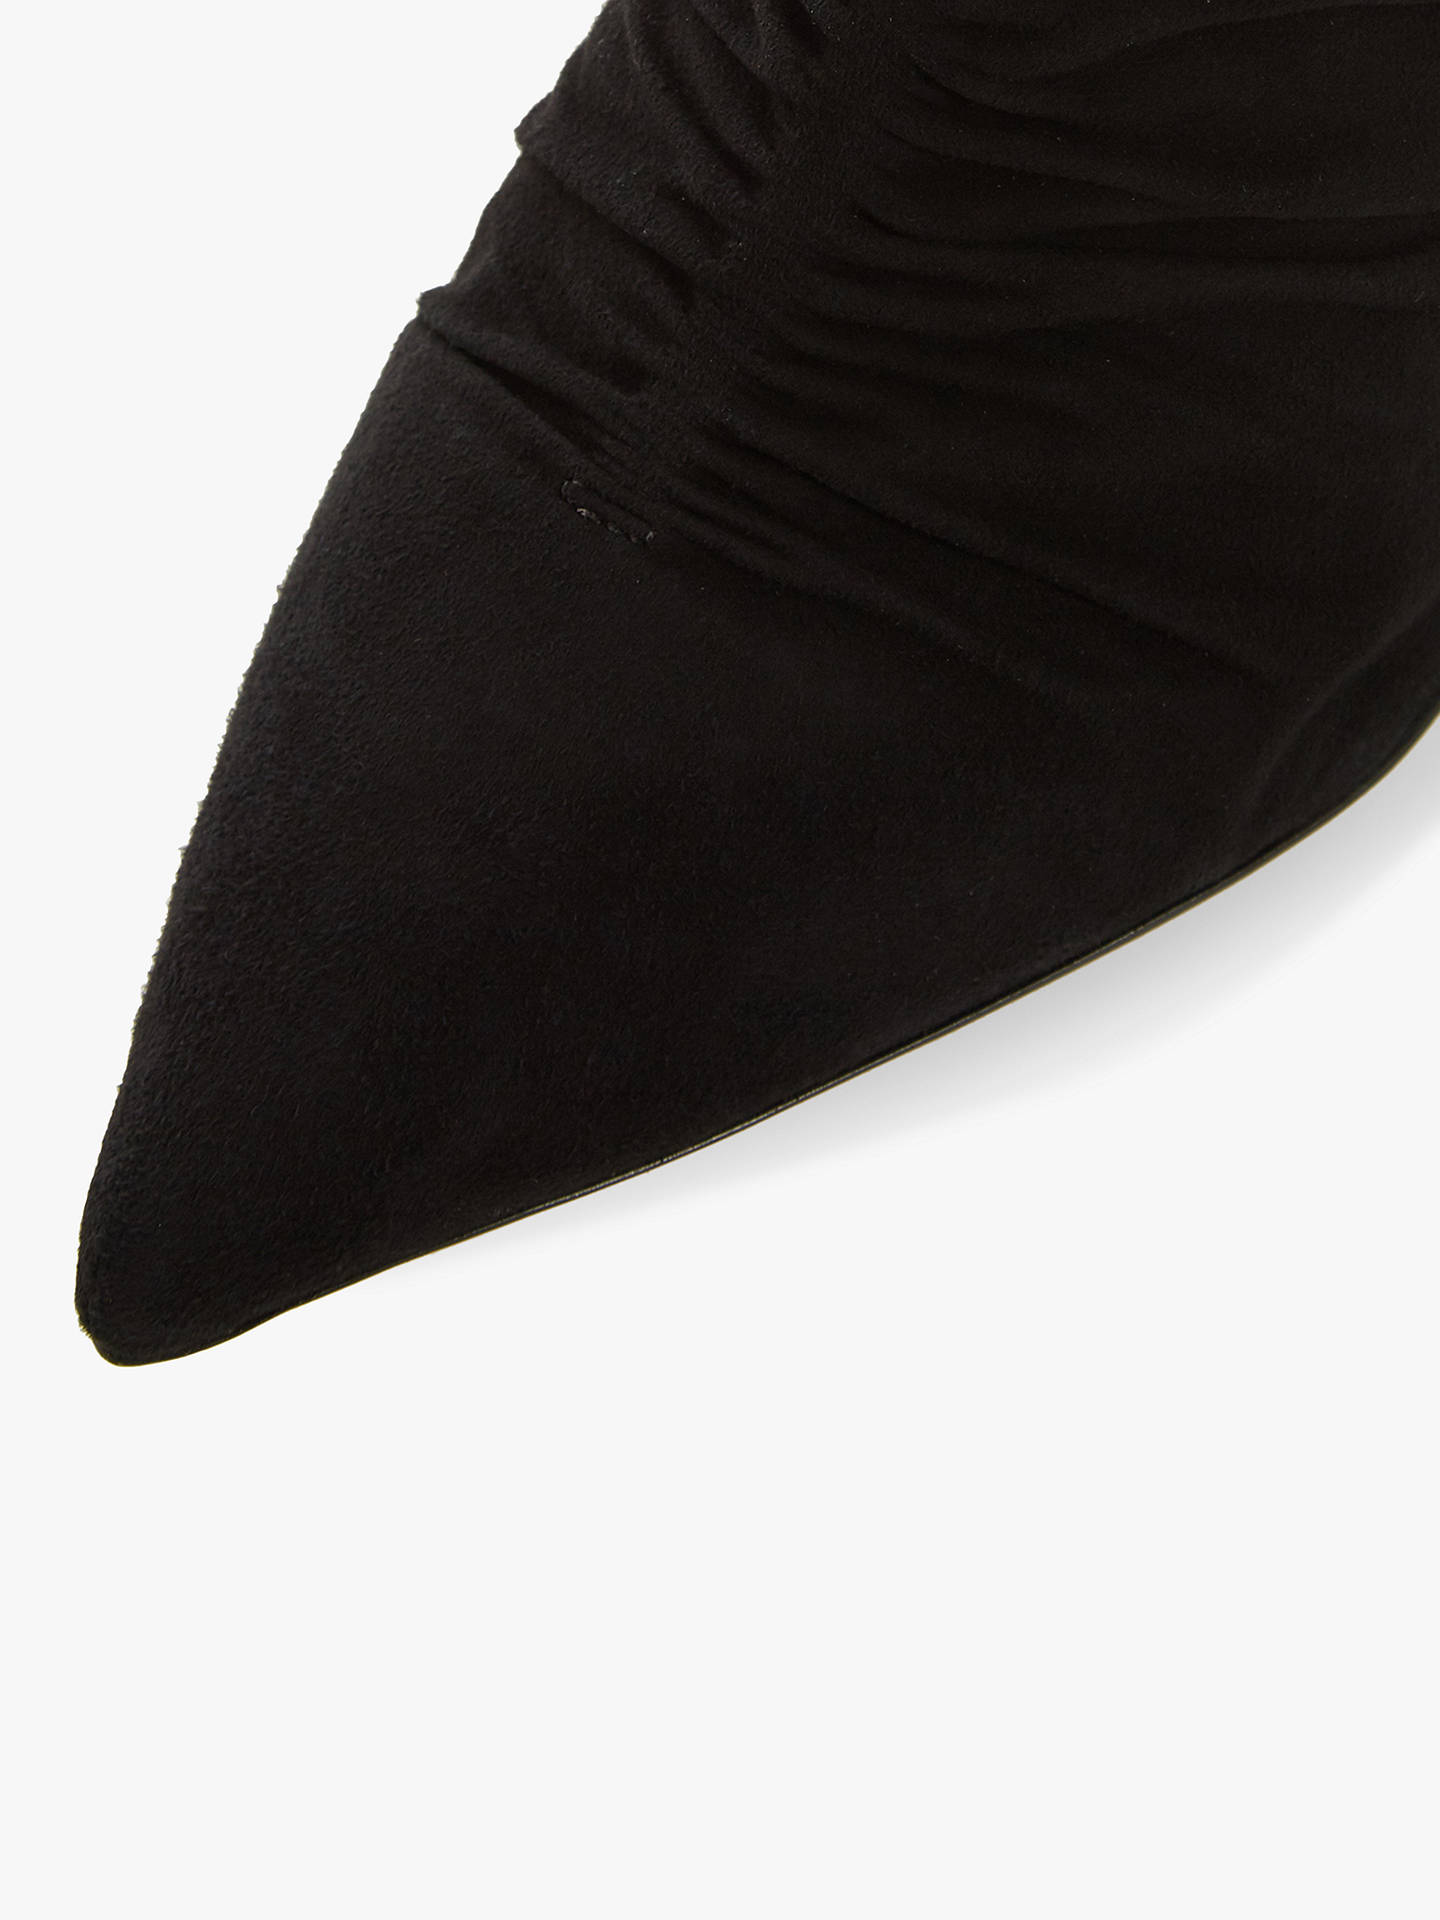 BuyDune Oasis Stiletto Heel Ankle Boots, Black Suede, 8 Online at johnlewis.com